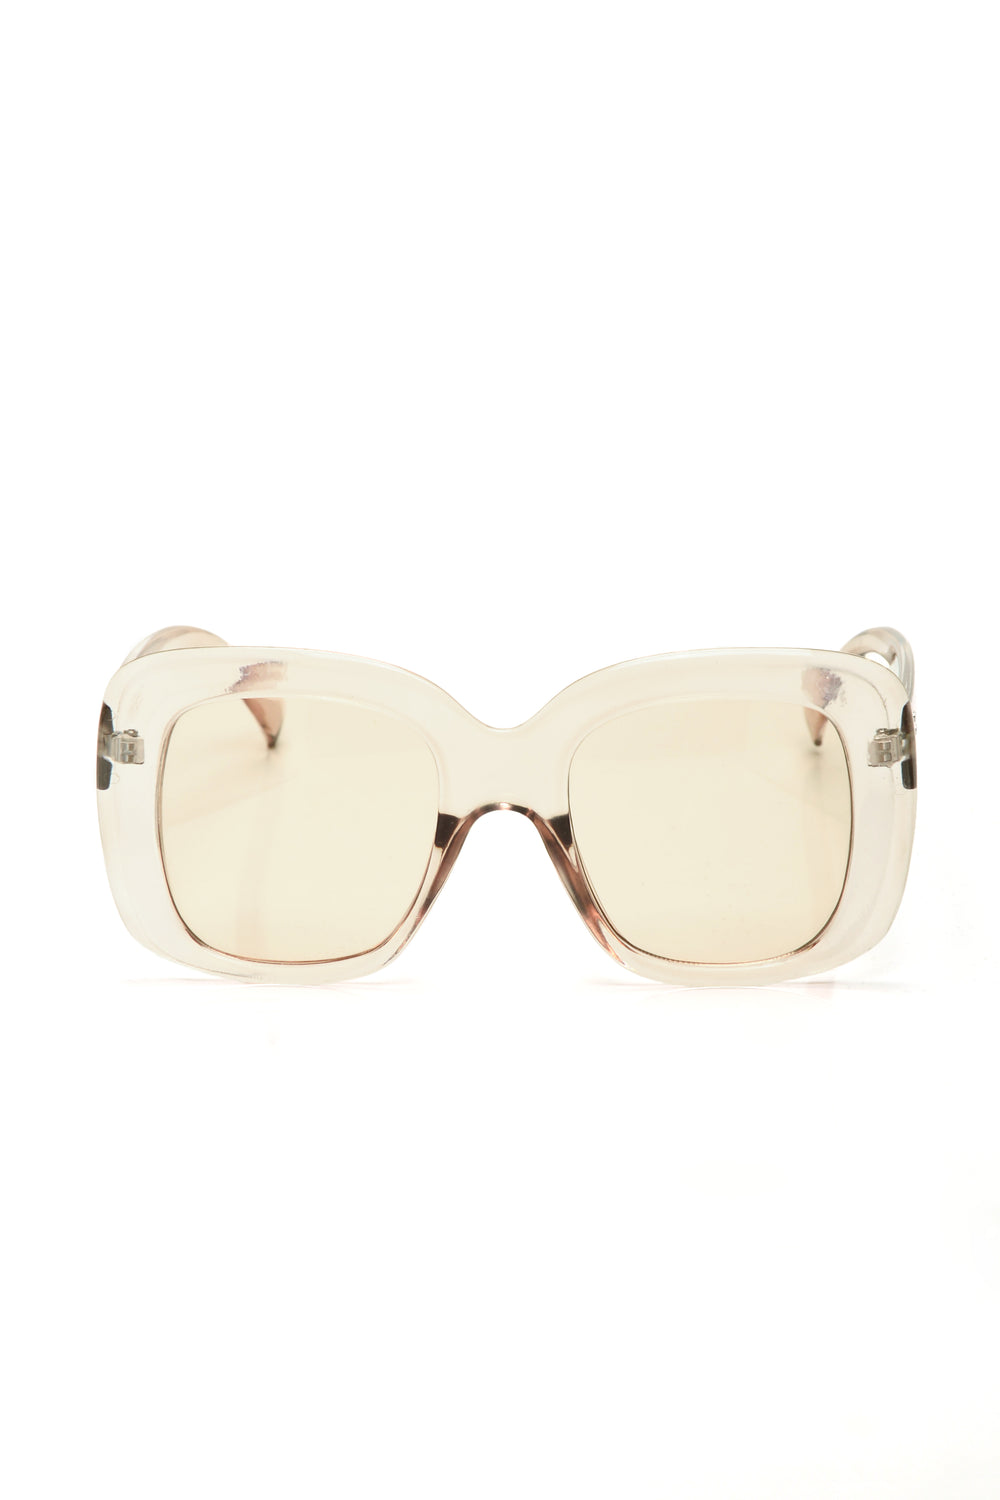 Dazed And Confused Sunglasses - Champagne